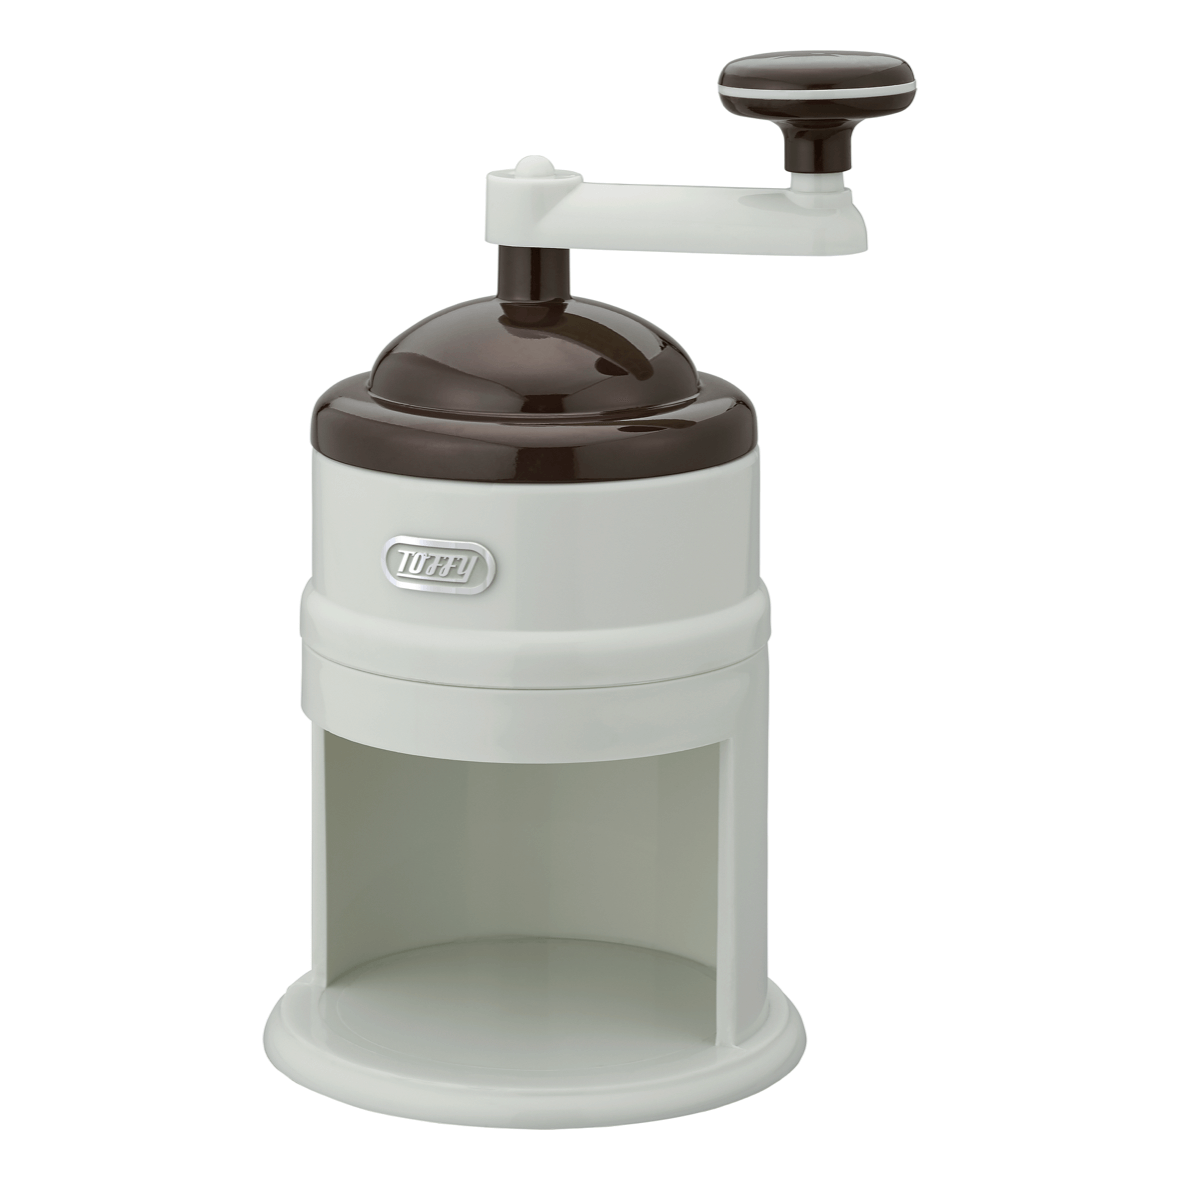 Toffy コンパクトかき氷器 K-IS7